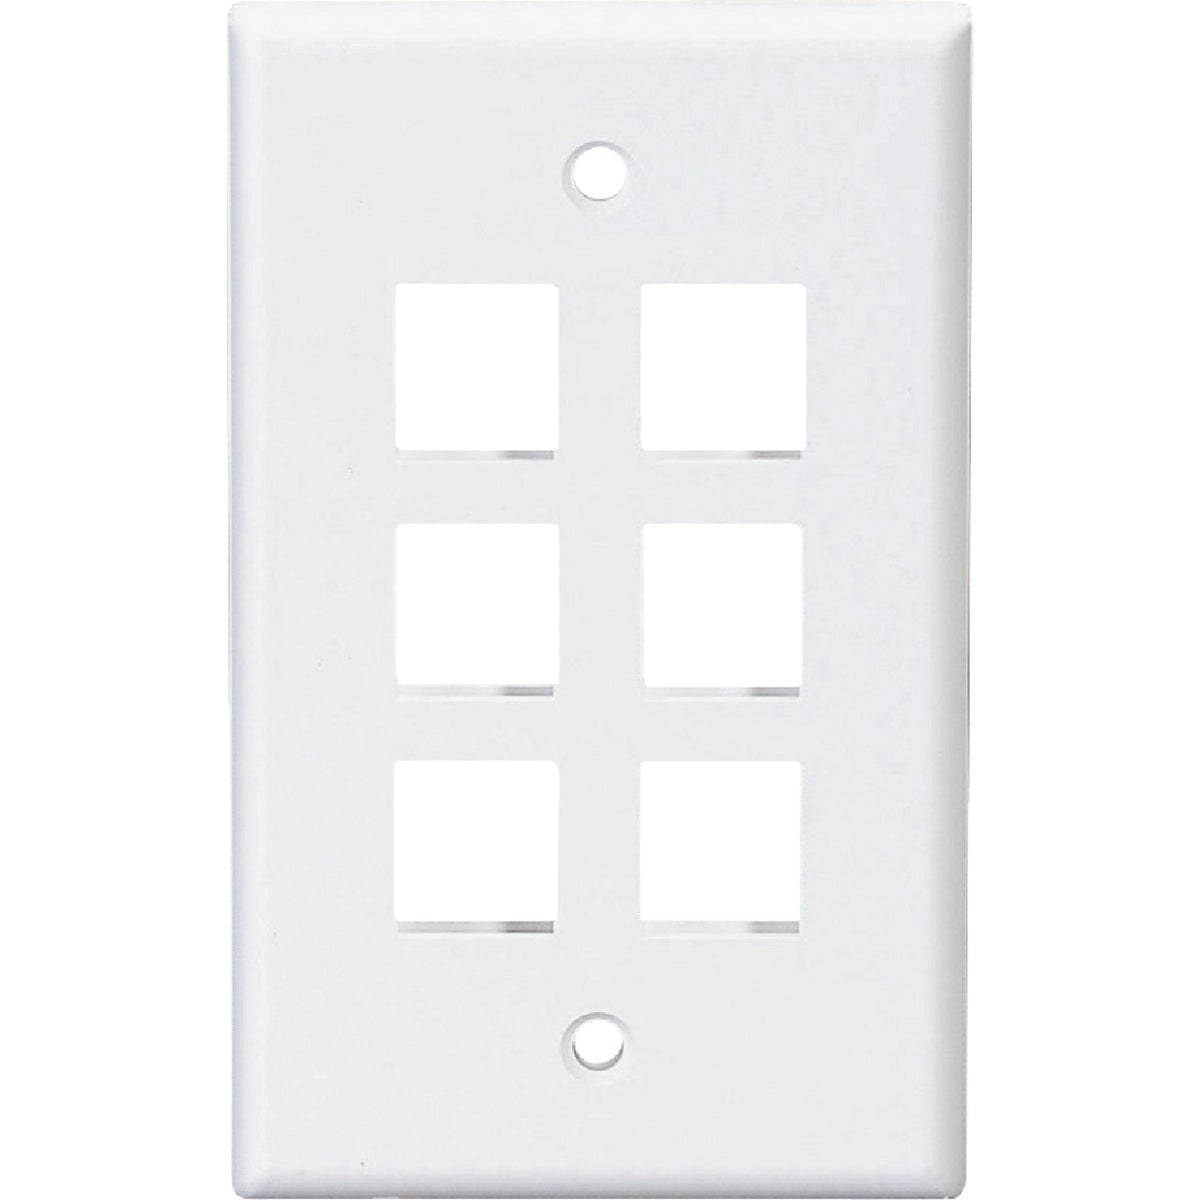 6-PORT WALL PLATE - R08-41080-6W by Leviton Mfg Co